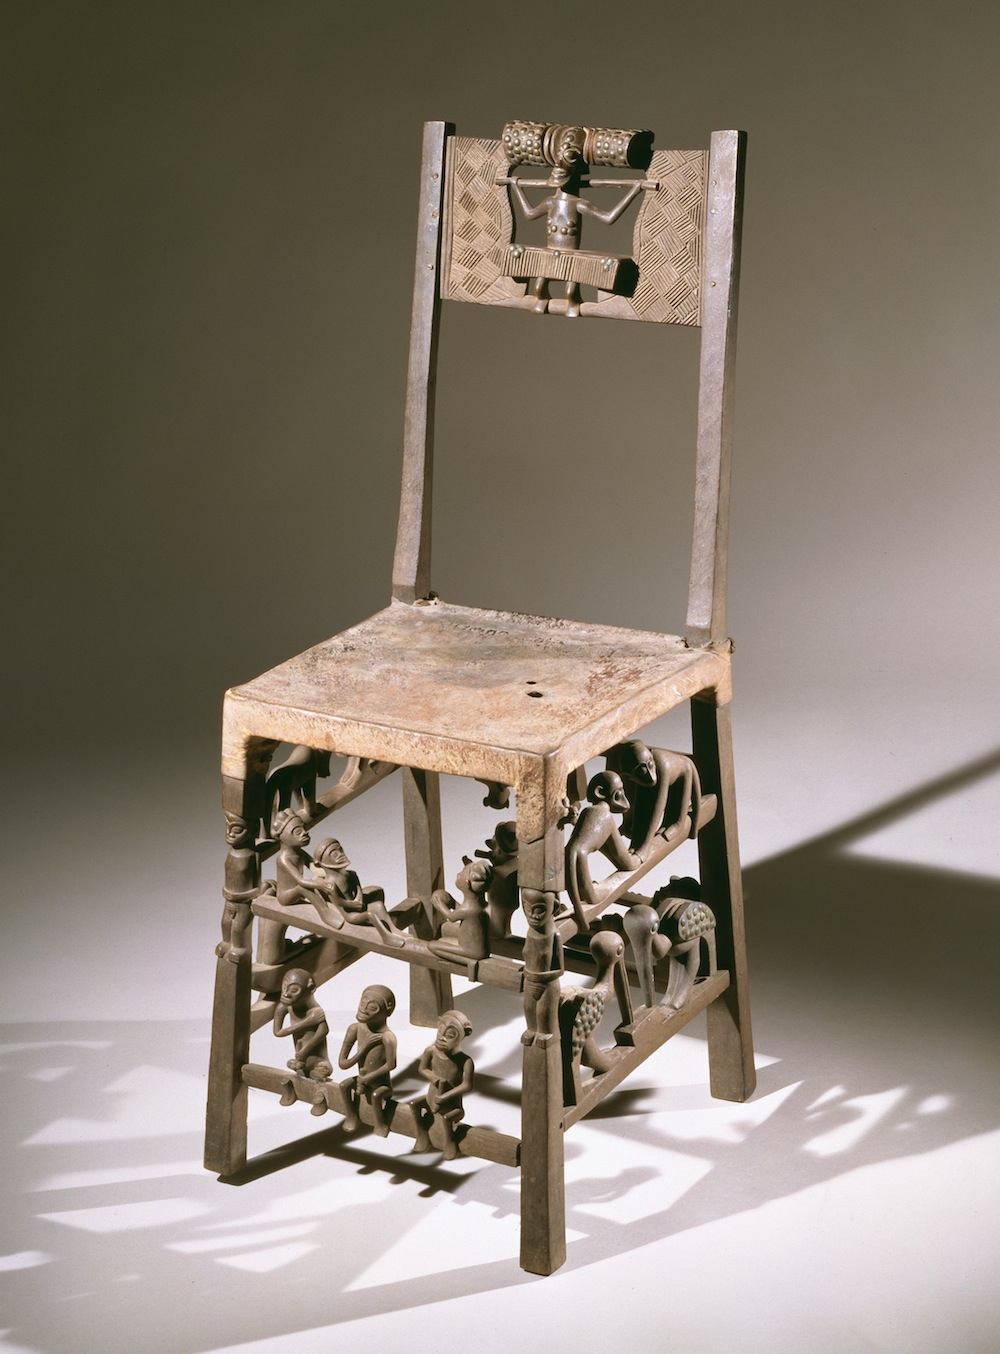 Chief's Chair or Throne, Late 19th or early 20th century, Chokwe people, Angola. Carved wood, animal skin, metal tacks. Gift of Mrs. Rita Judge Smith. 2001.104 .